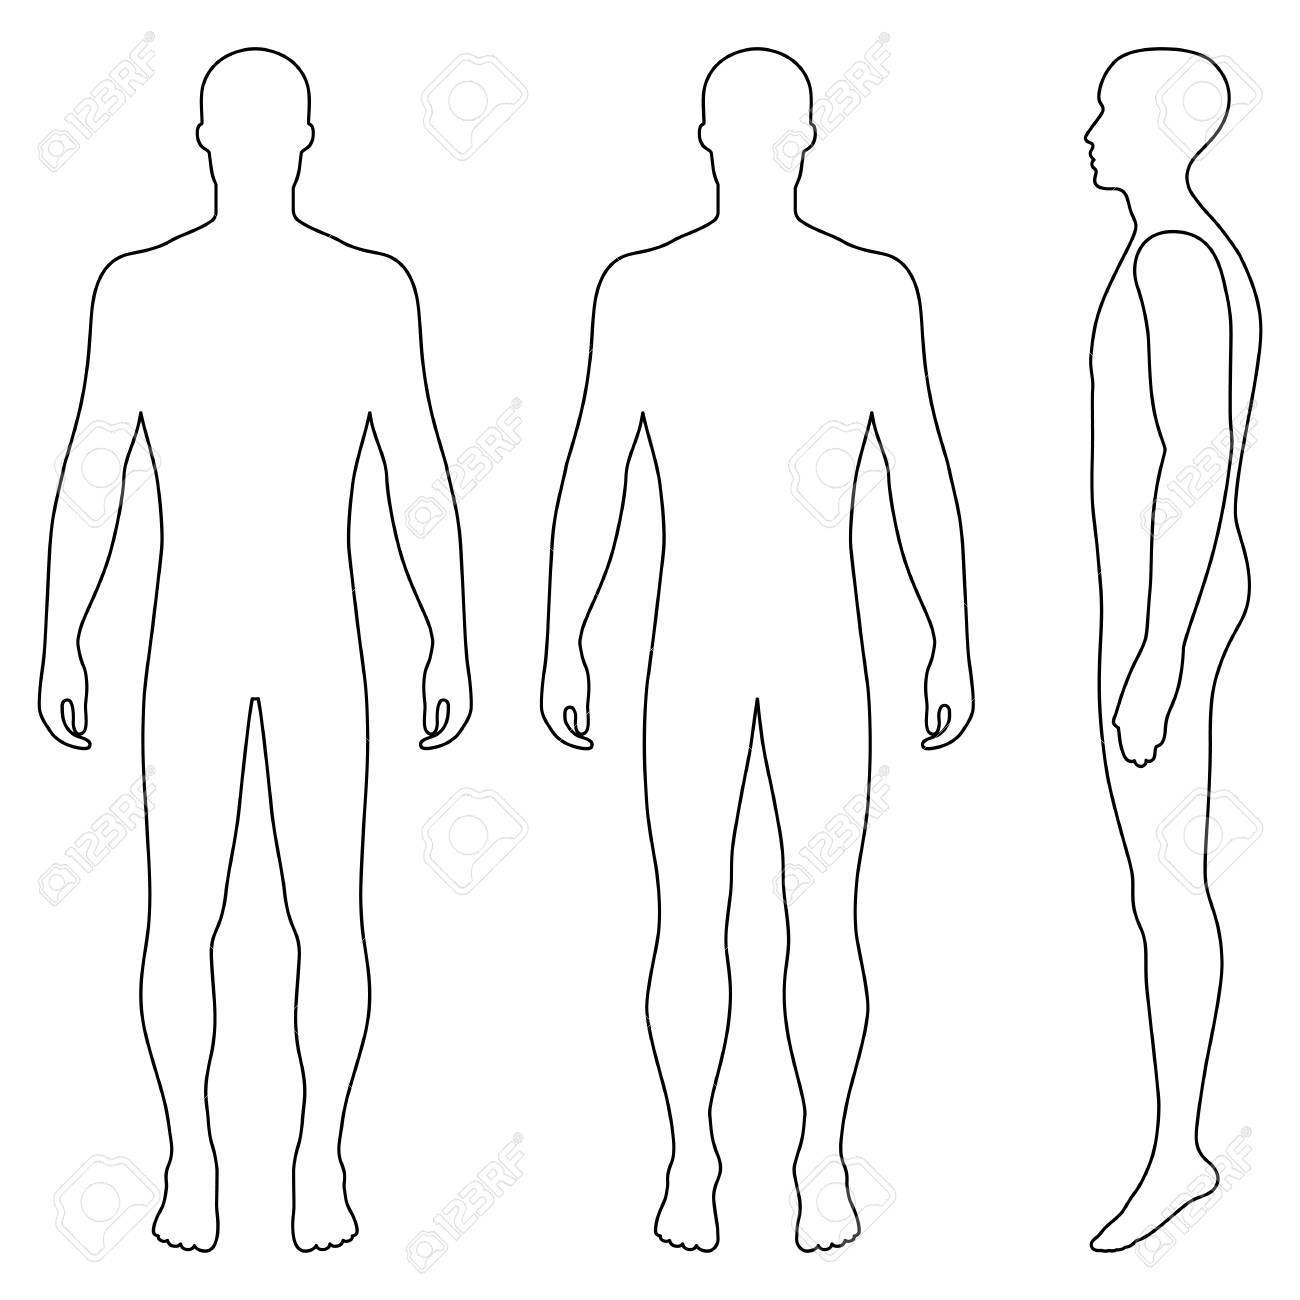 graphic regarding Printable Outline of Human Body Front and Back called Design overall body total period bald template determine silhouette (entrance,..